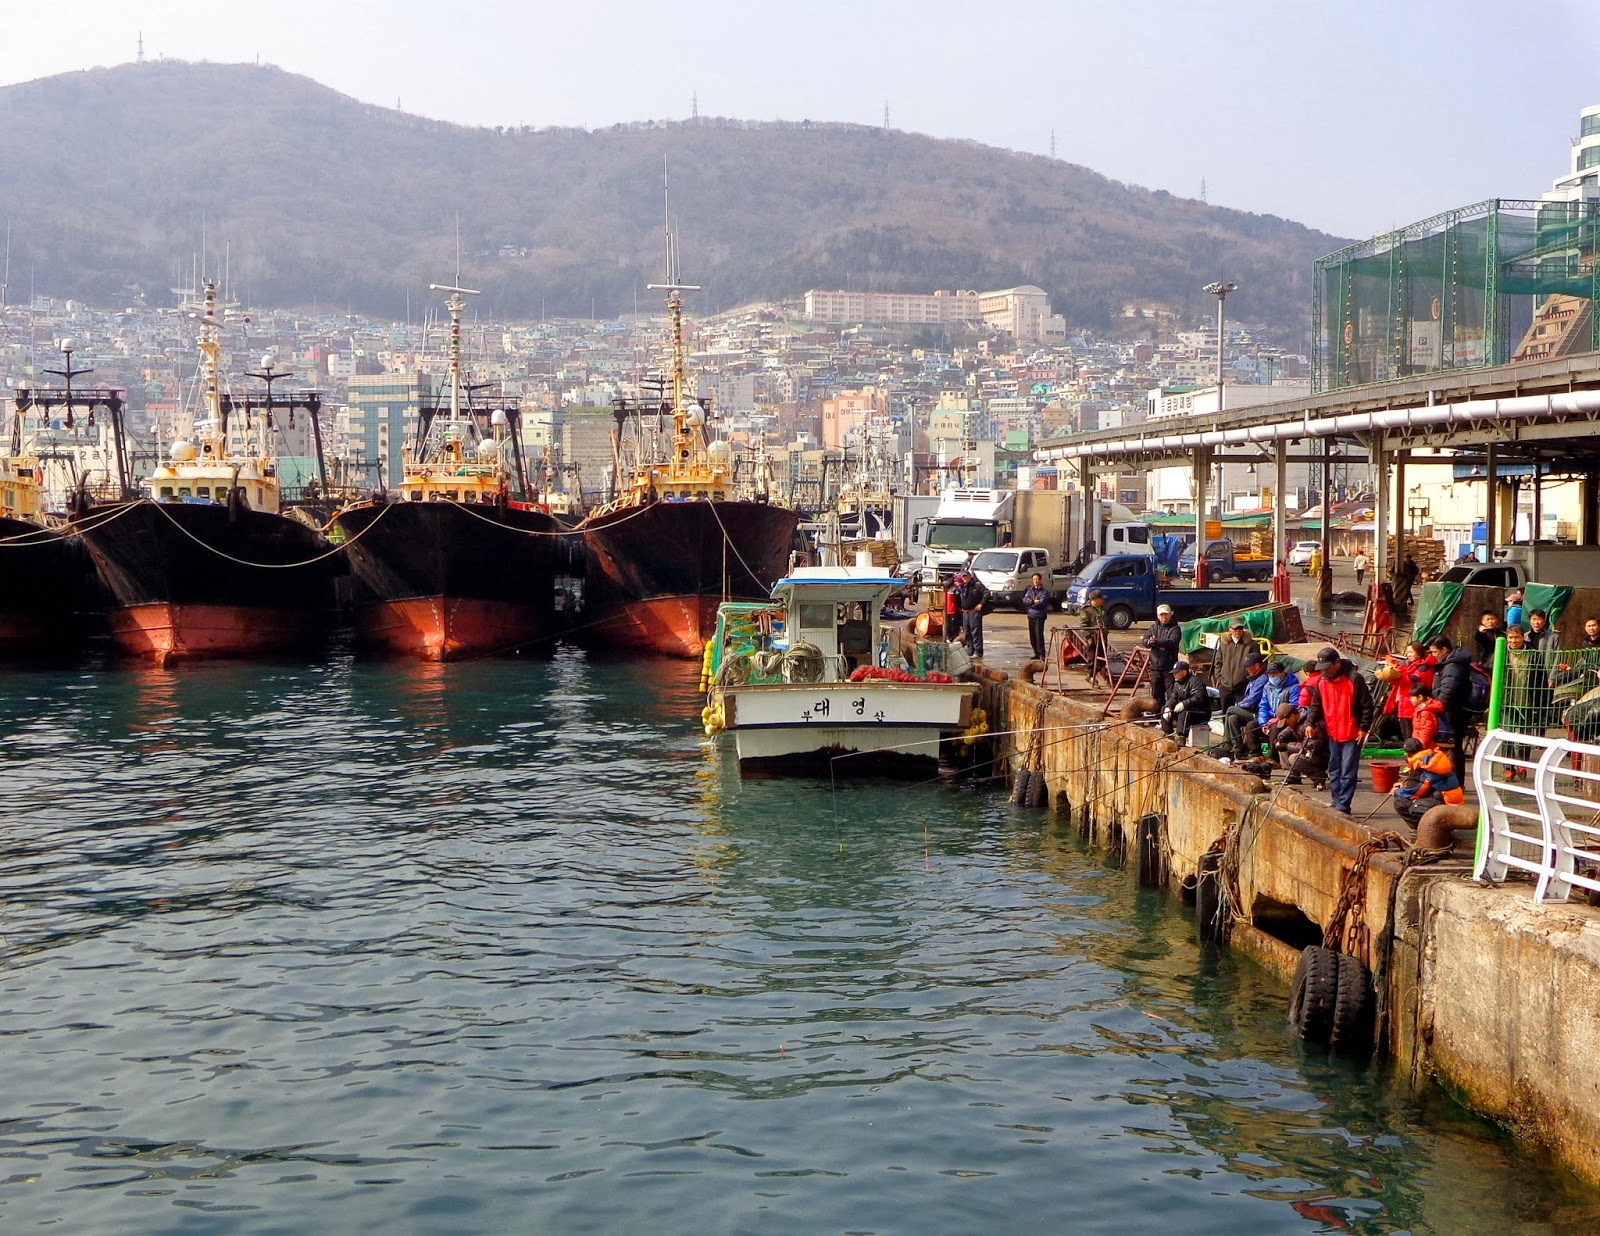 Port near Jagalchi market in Busan